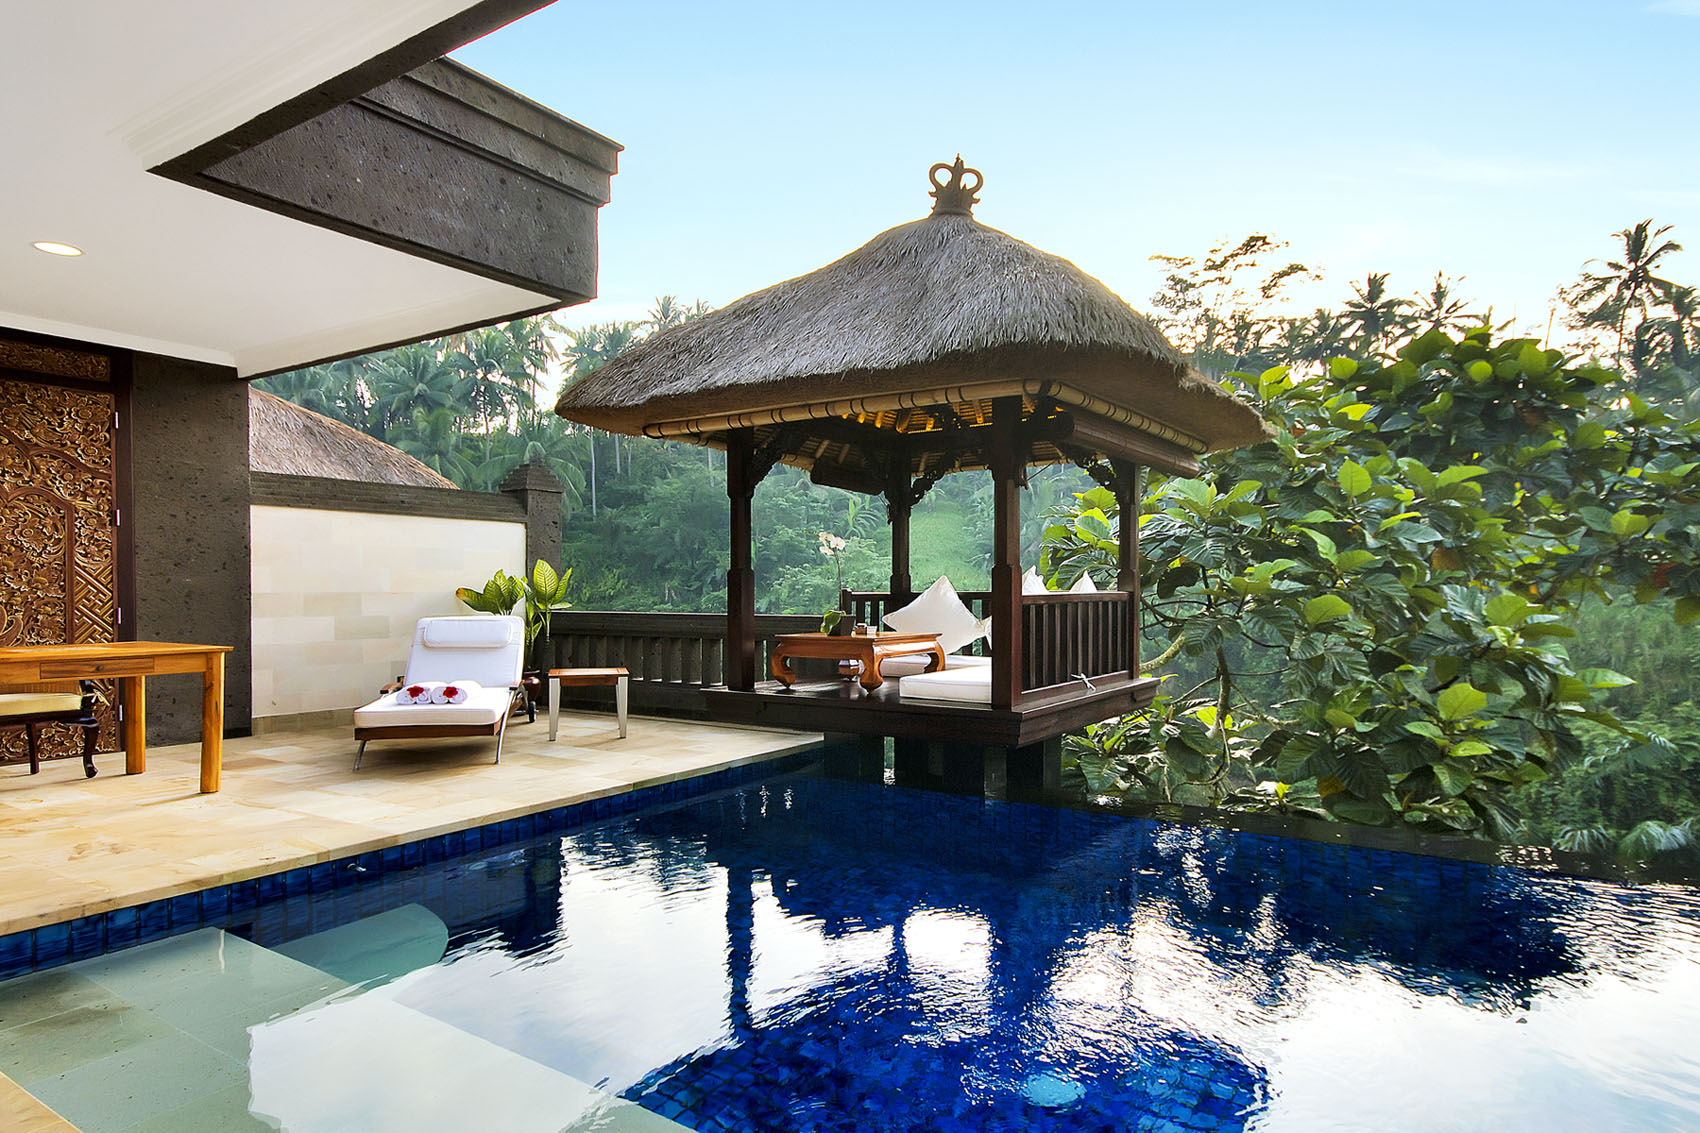 panchoran_retreat_bali